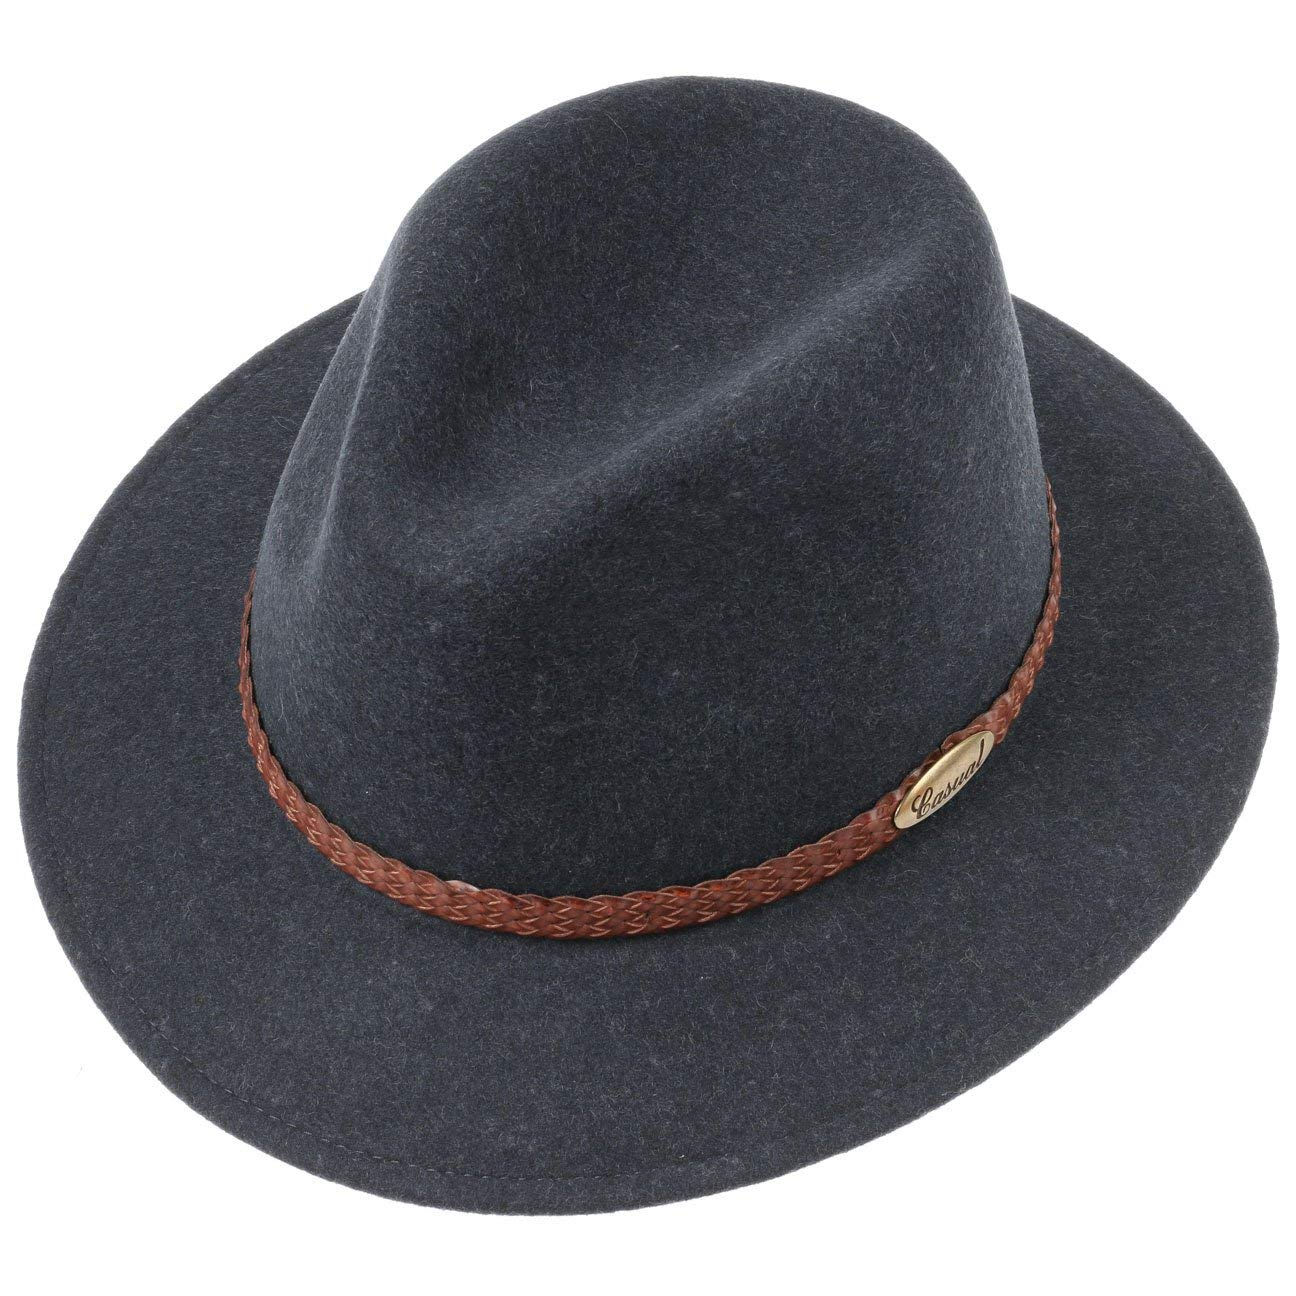 Lierys Casual Light Traveller Wool Felt Hat Men Made in Italy